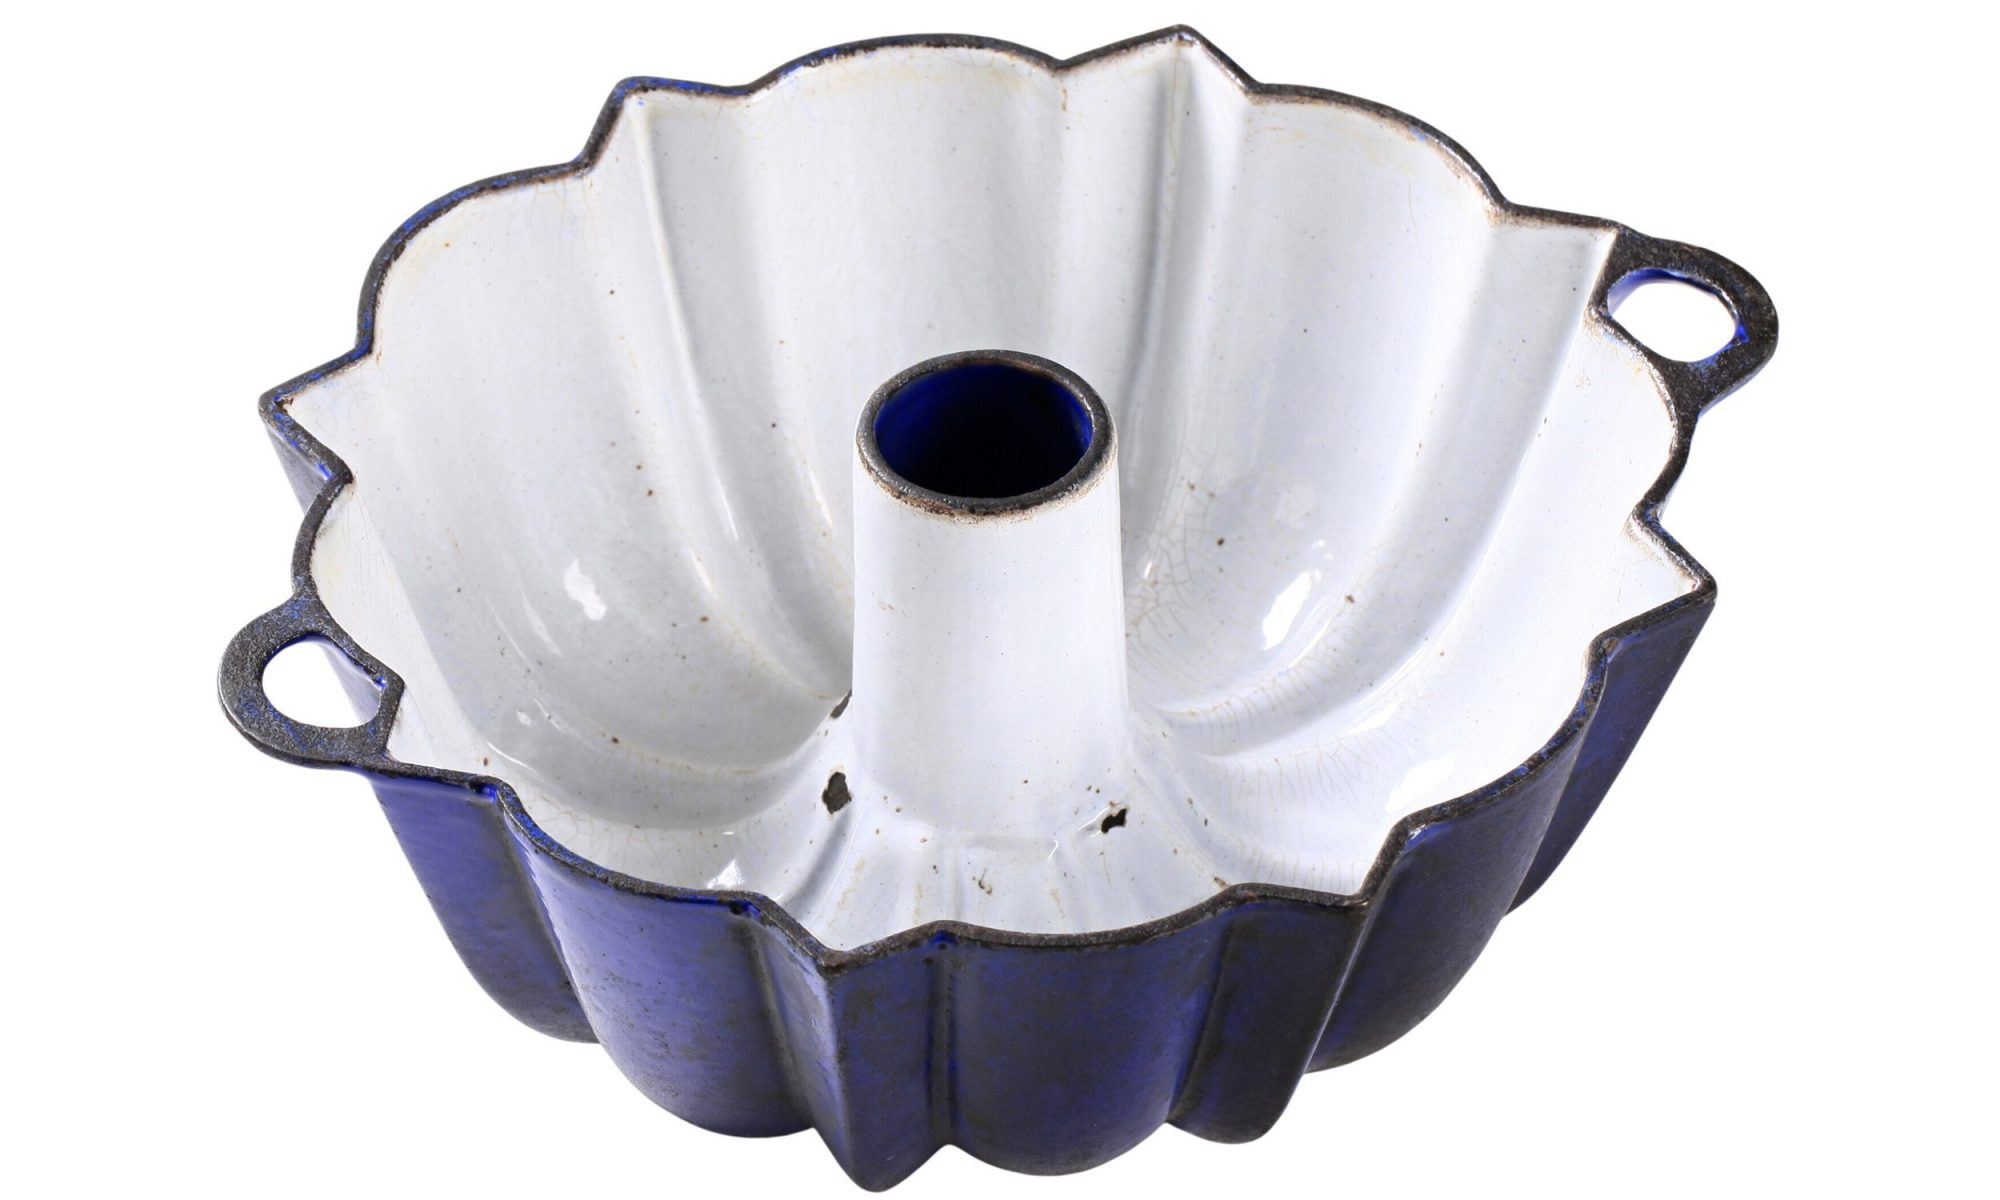 EC: What's the Difference Between a Bundt Pan and a Tube Pan?